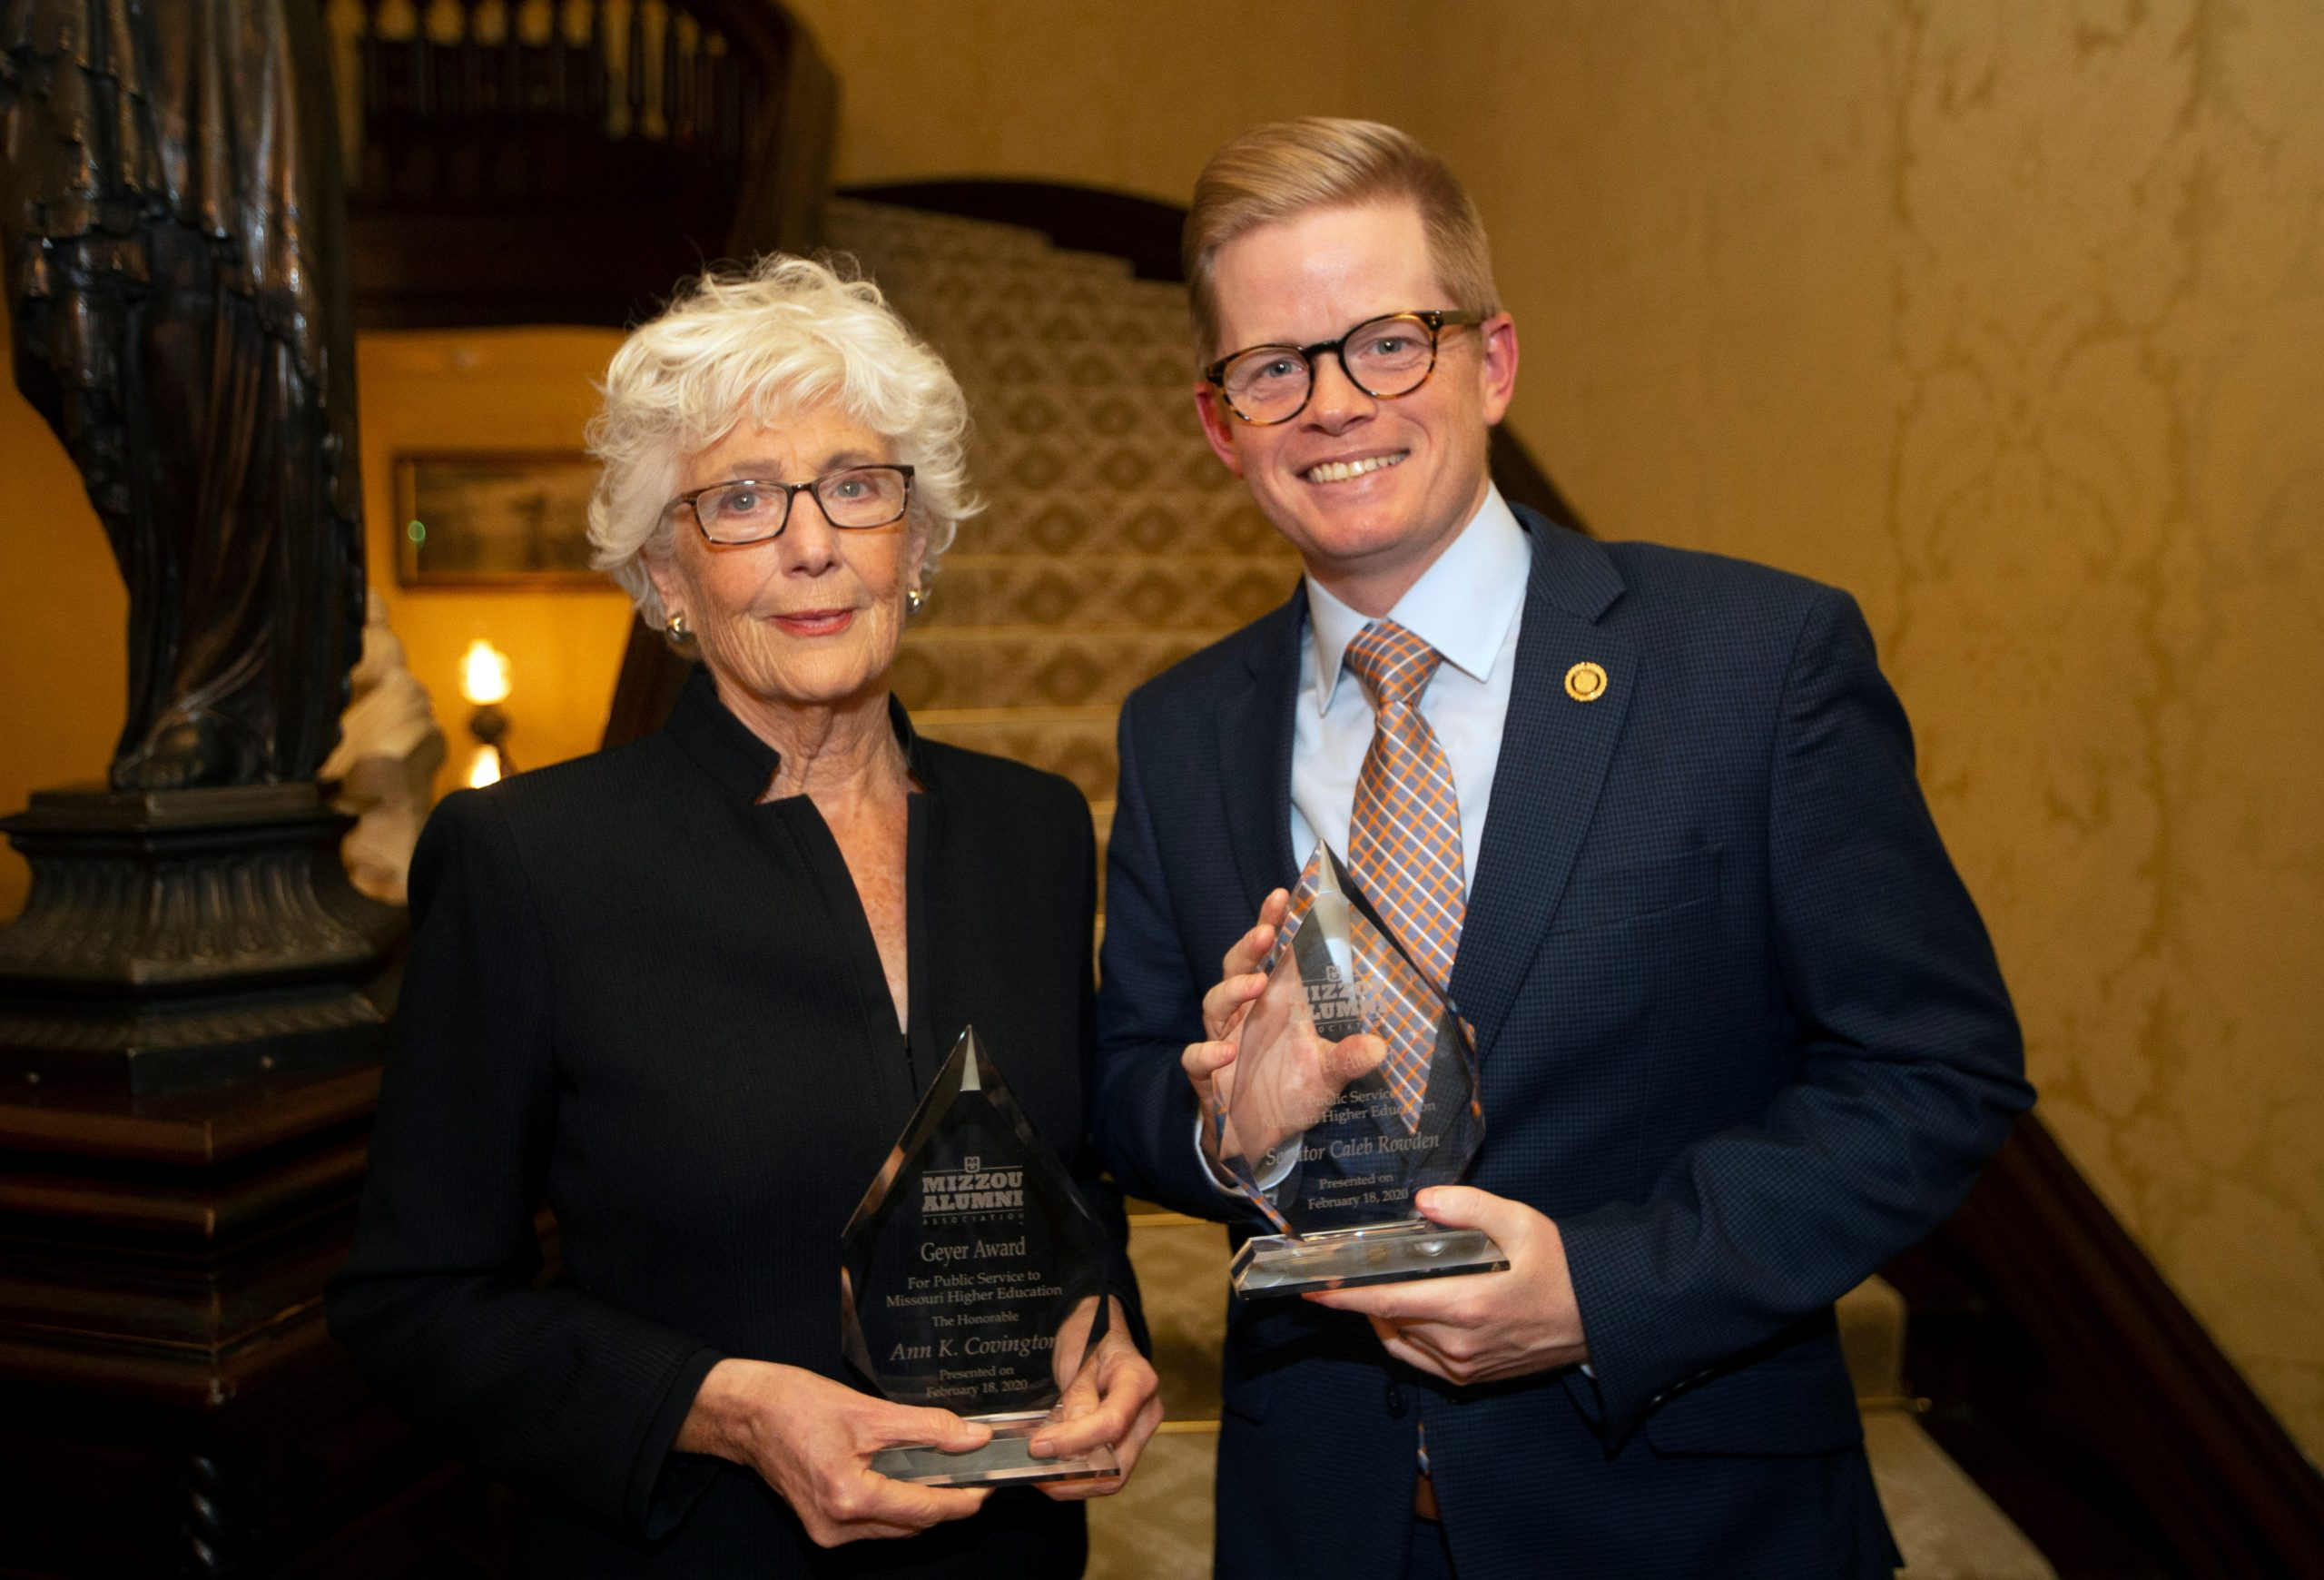 This is a picture of Ann Covington and Caleb Rowden posing wit their Geyer Awards at the Governor's Mansion.